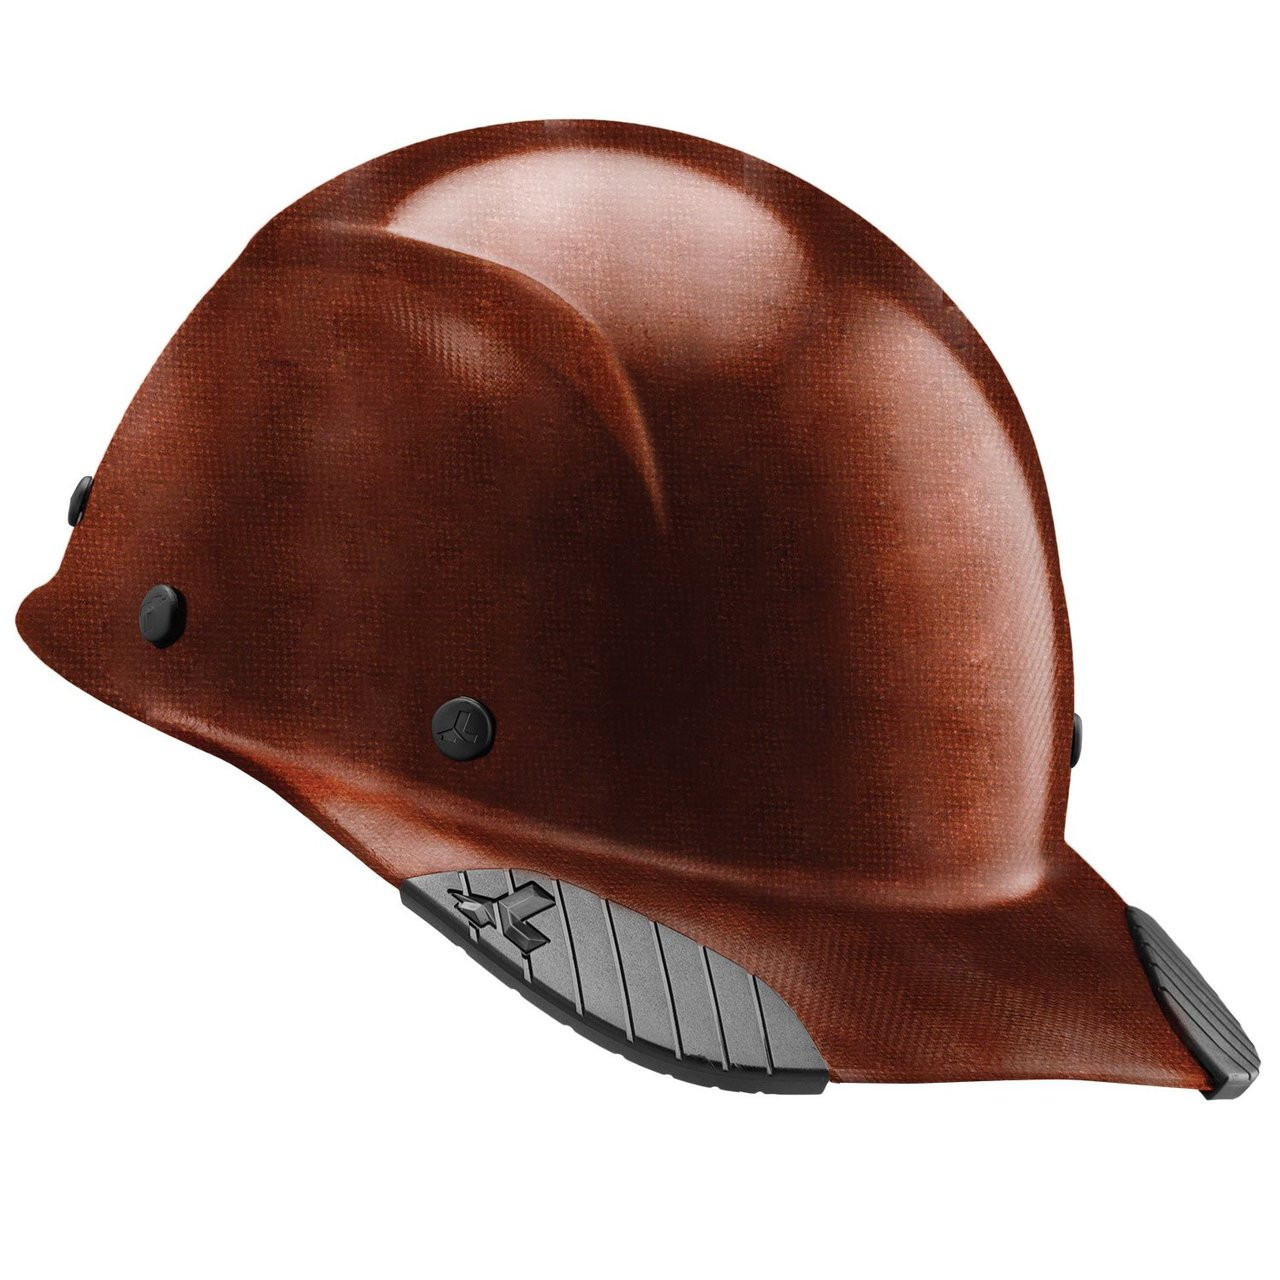 f42d519b4ef Lift Safety DAX CAP Style Hard Hat with 6 Point Suspension. Price   72.00.  Image 1